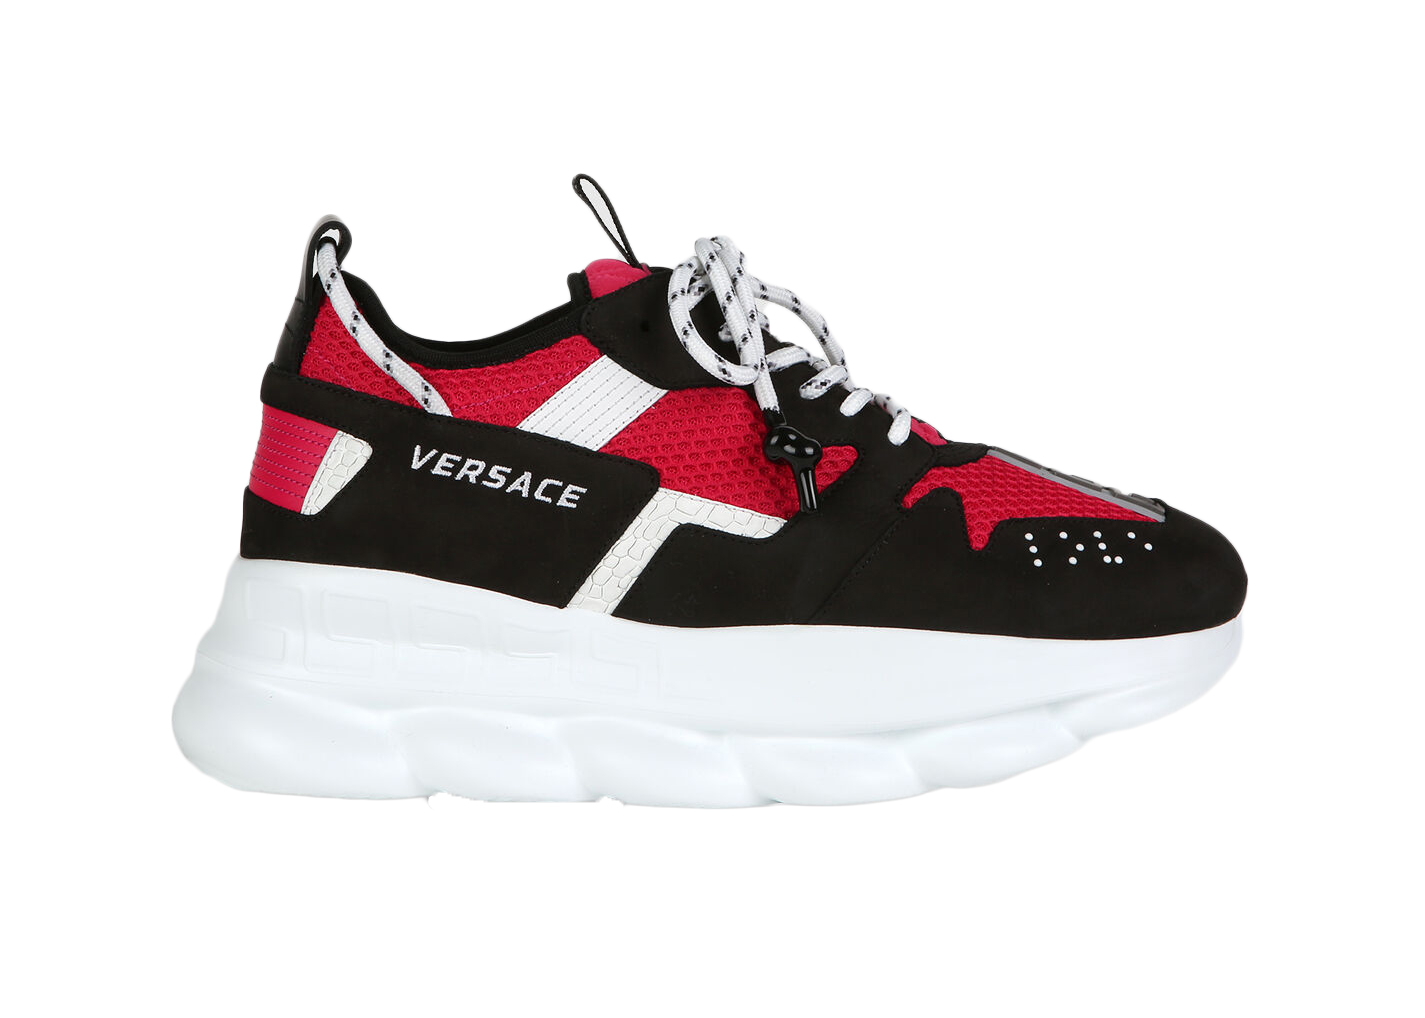 Versace Chain Reaction 2 Red Black